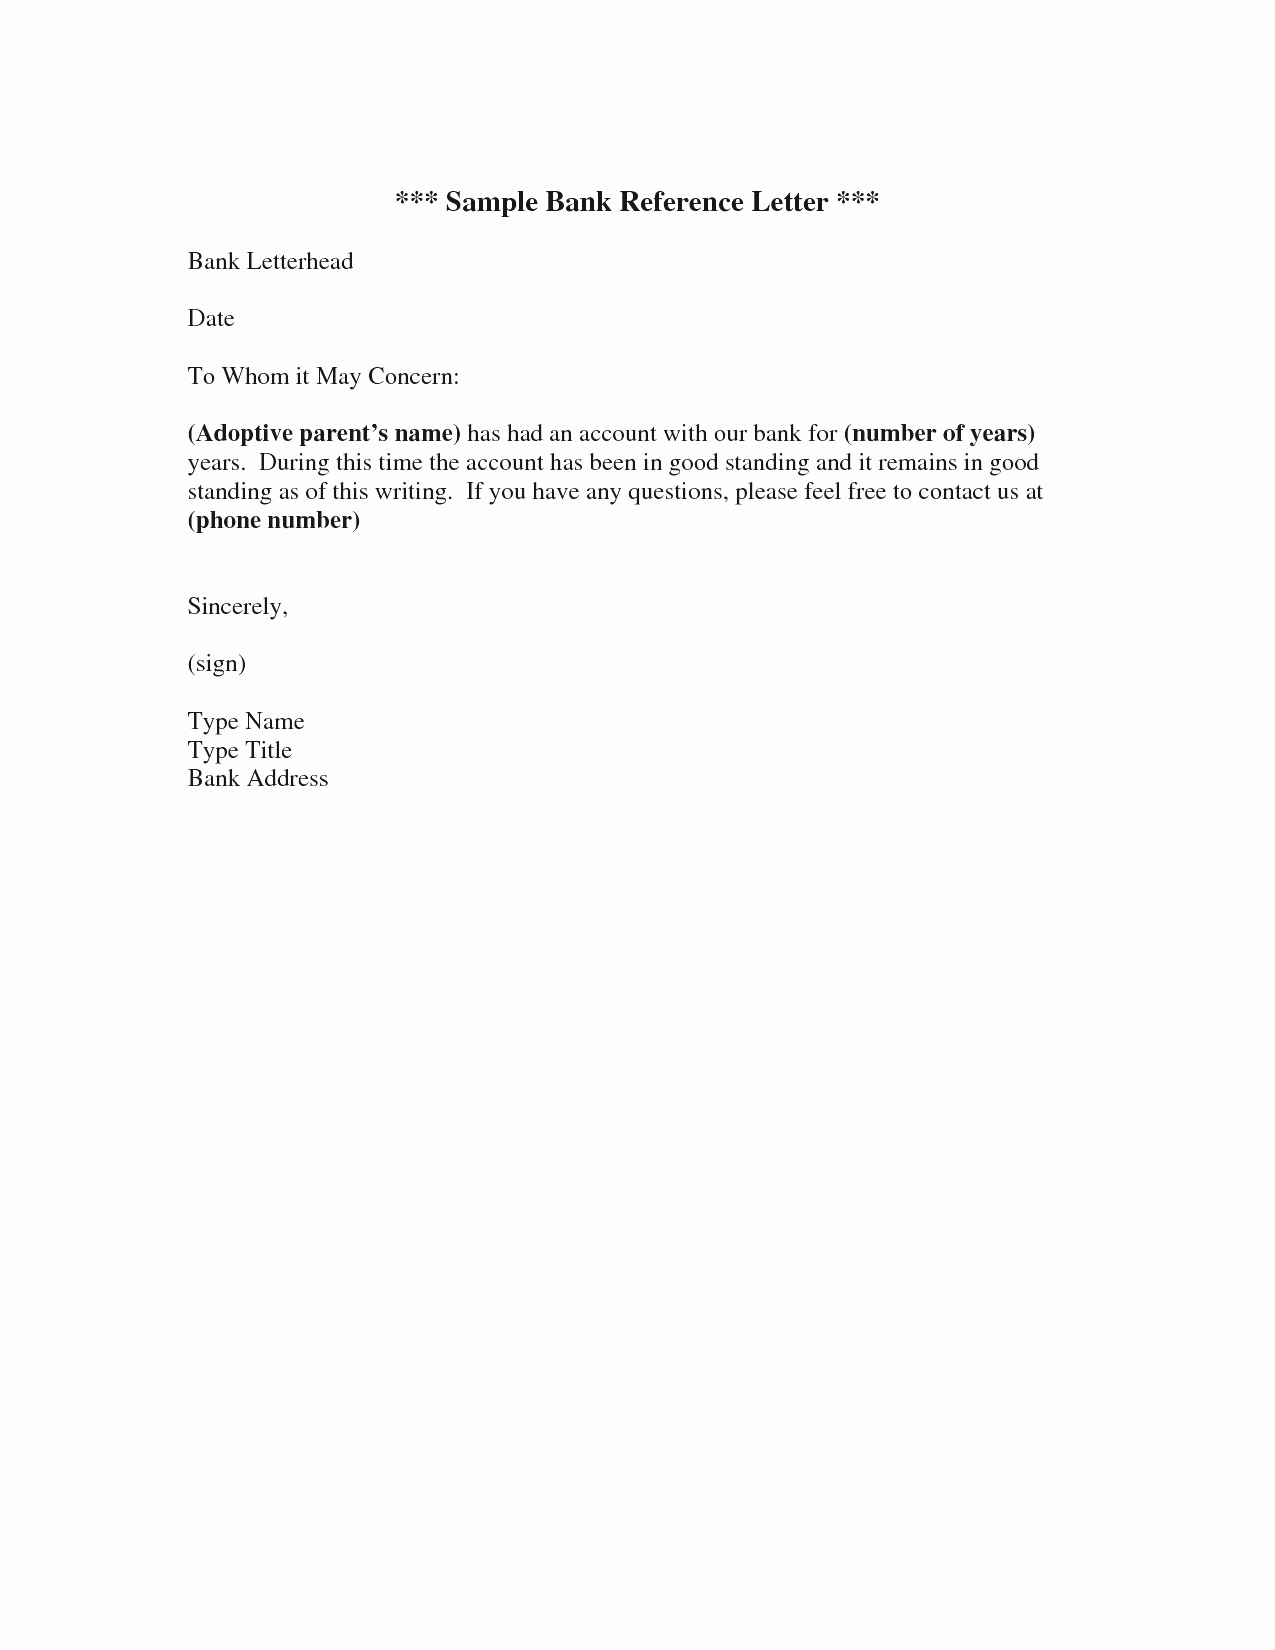 Reference Letter for Employee Template Best Of Business Reference Letter Template Example Mughals